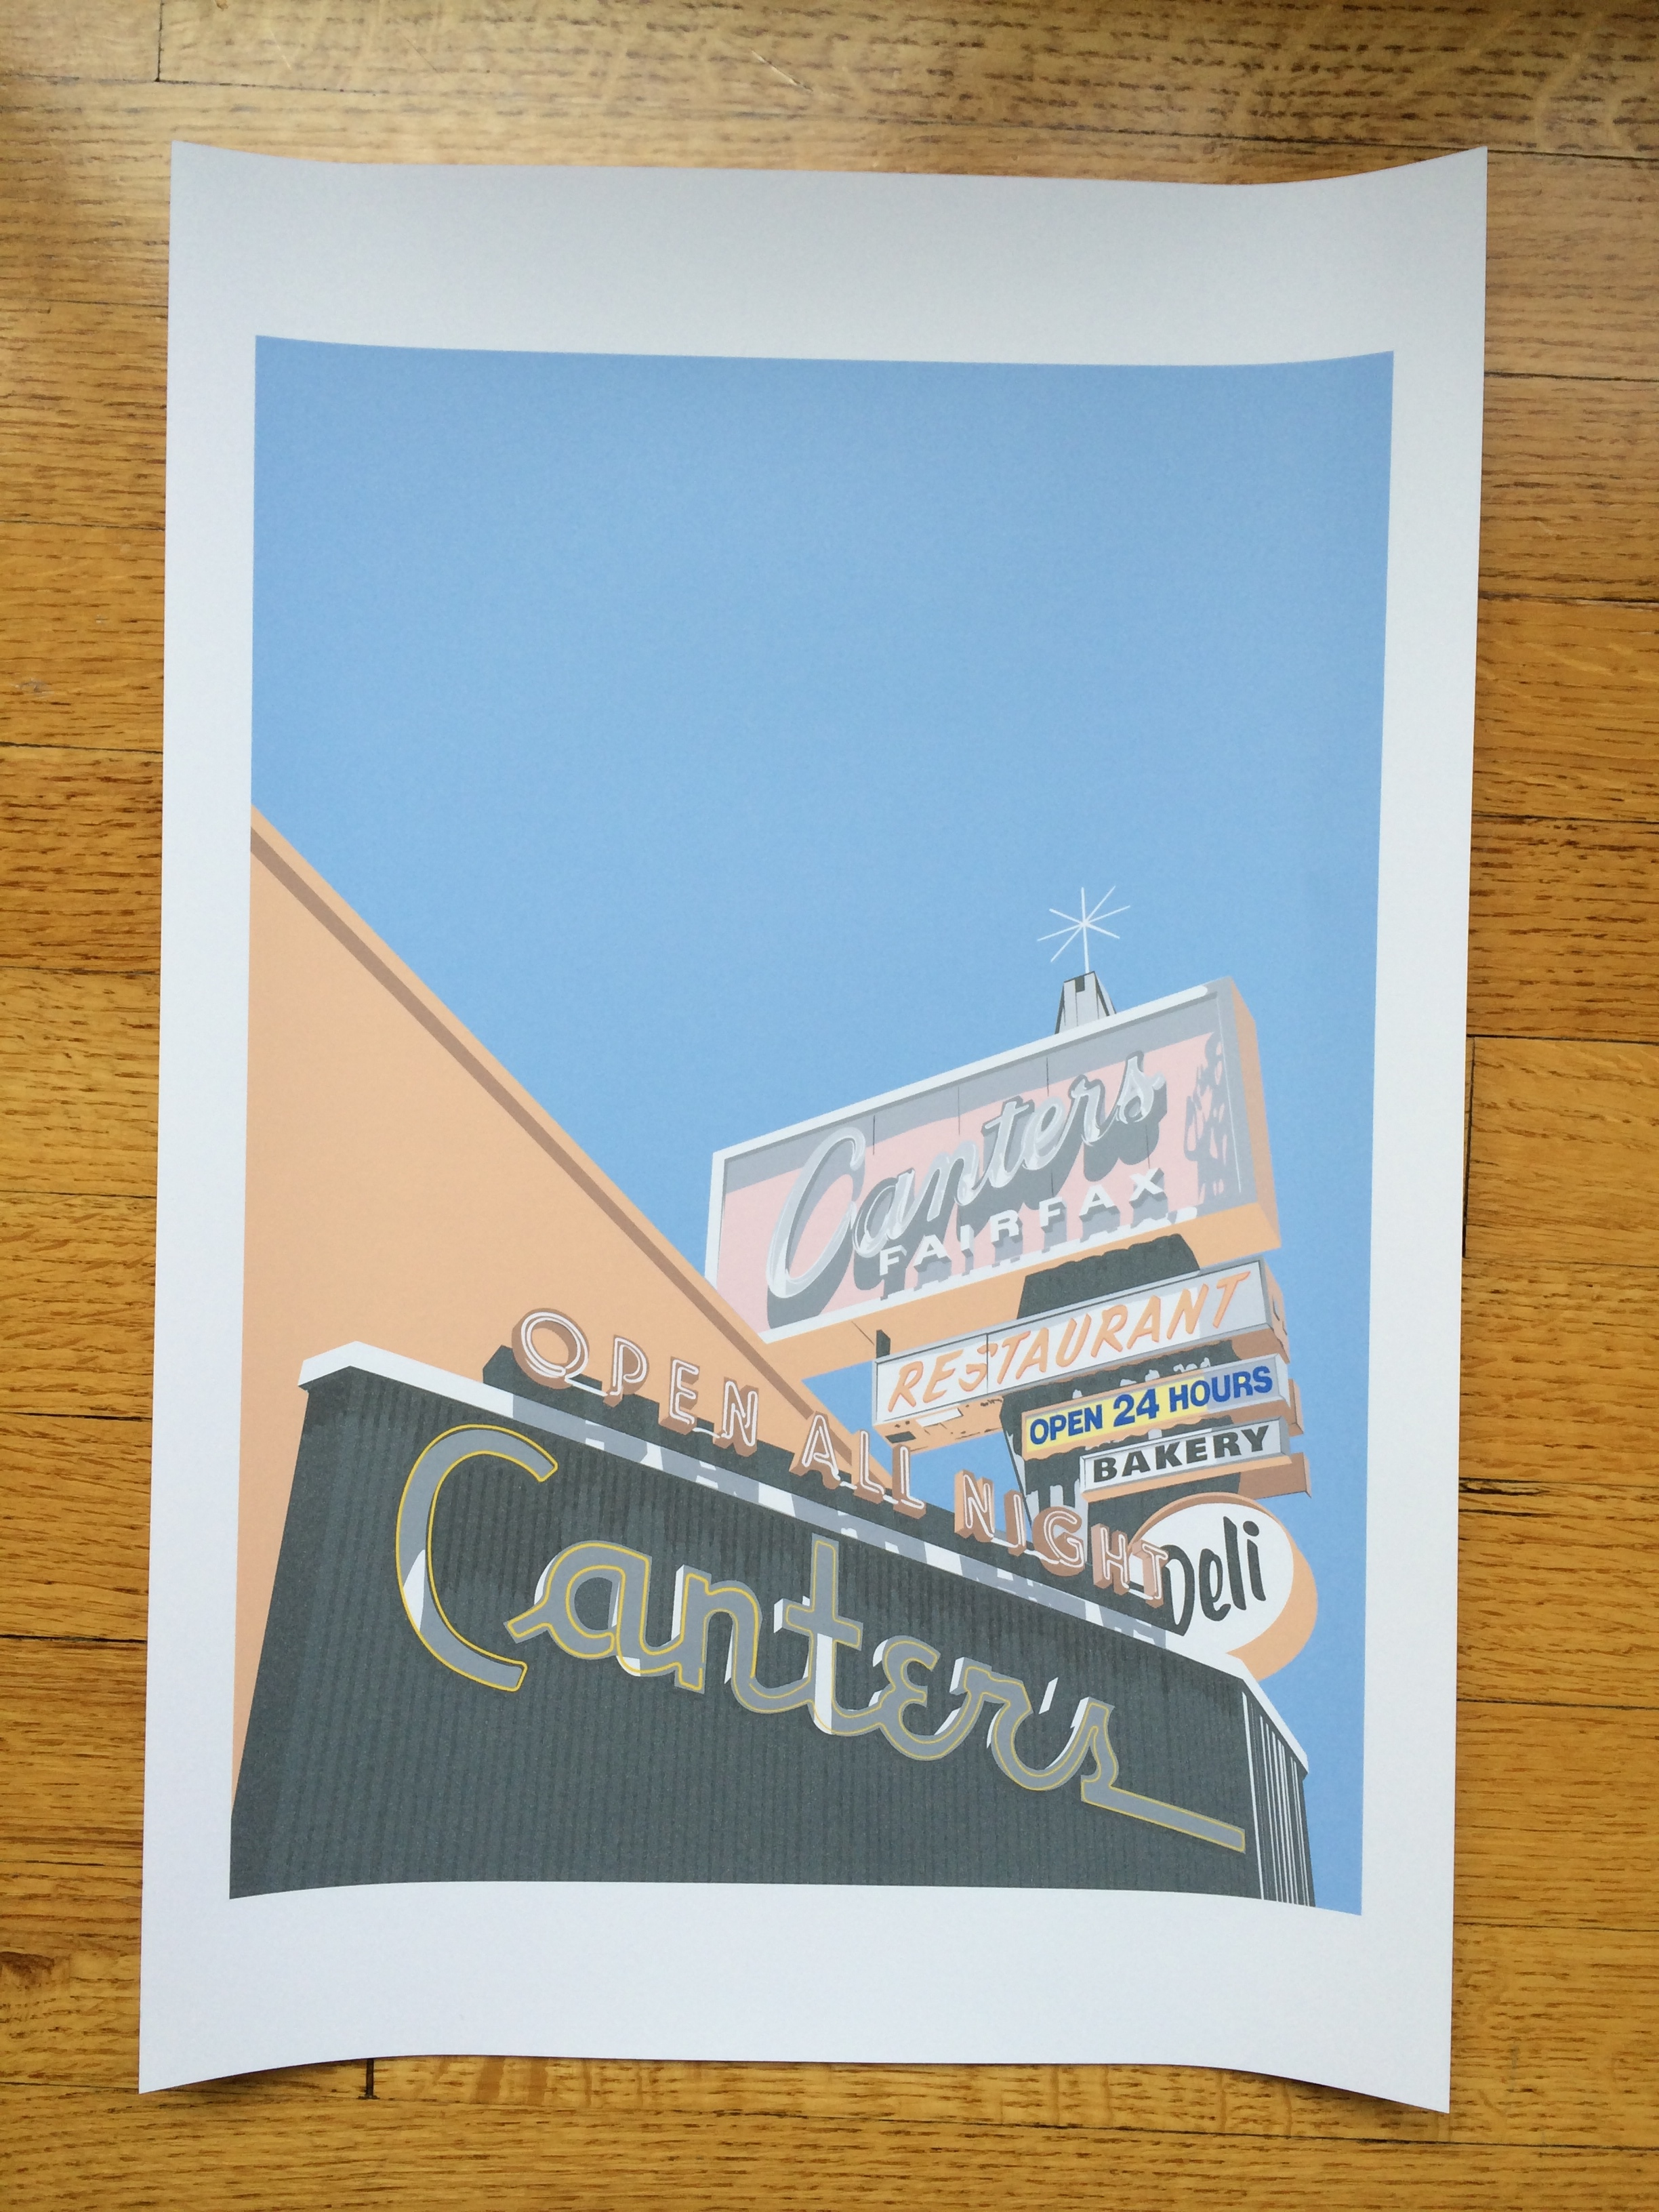 Canters Los Angeles